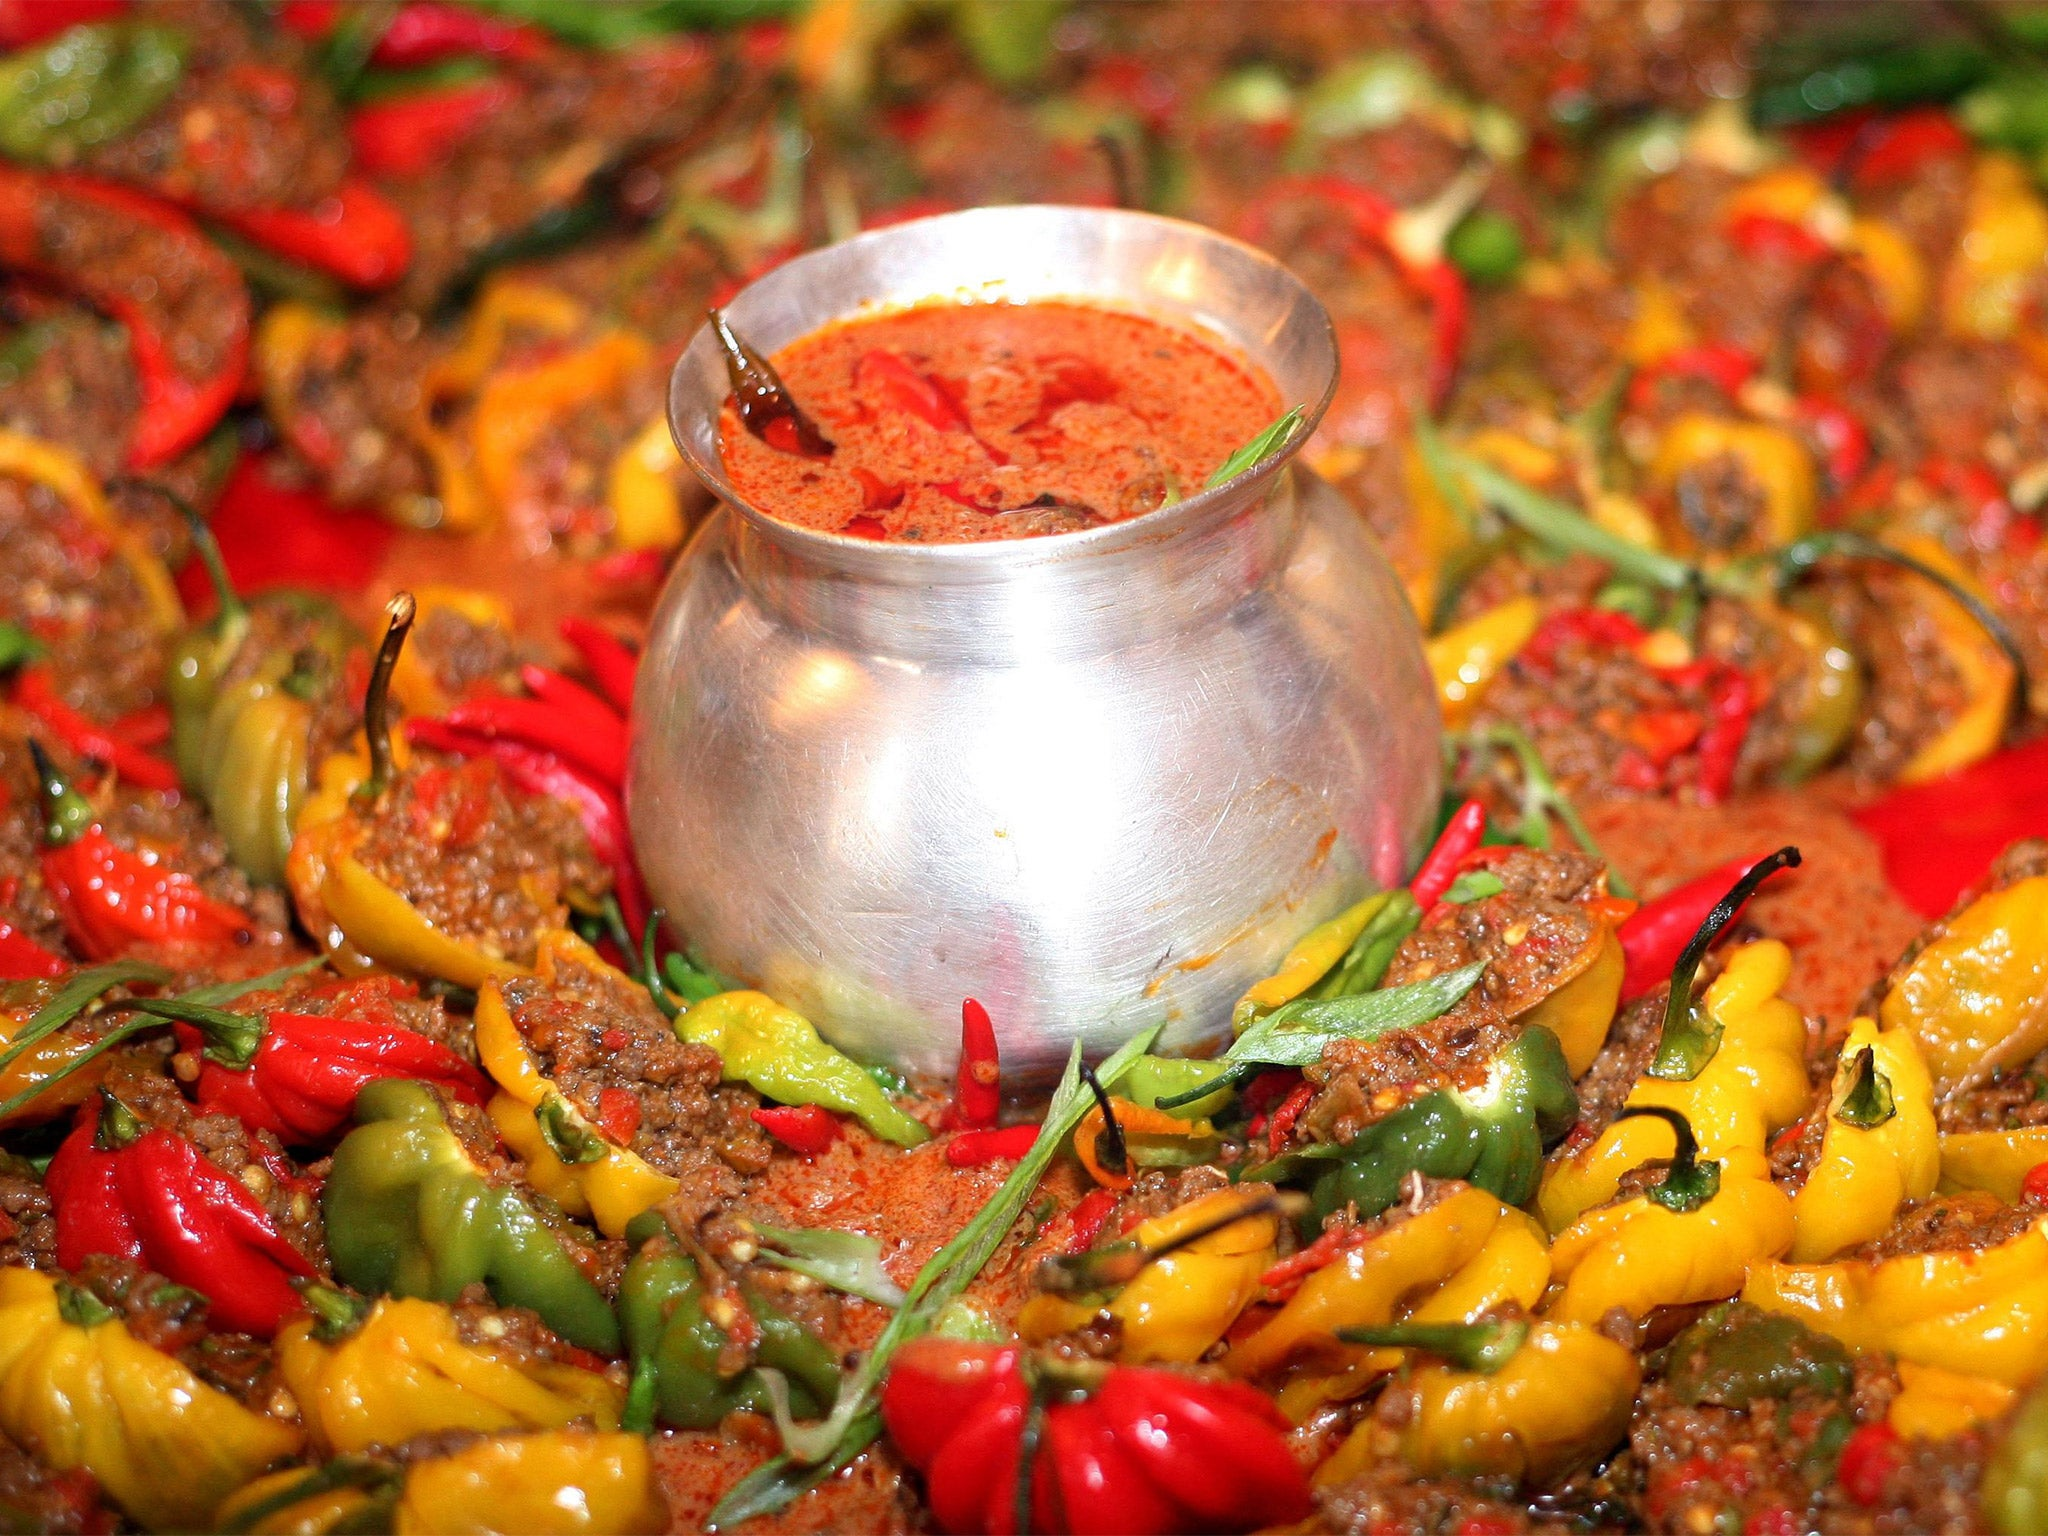 Spicy food 'can lower the risks of early death'   The